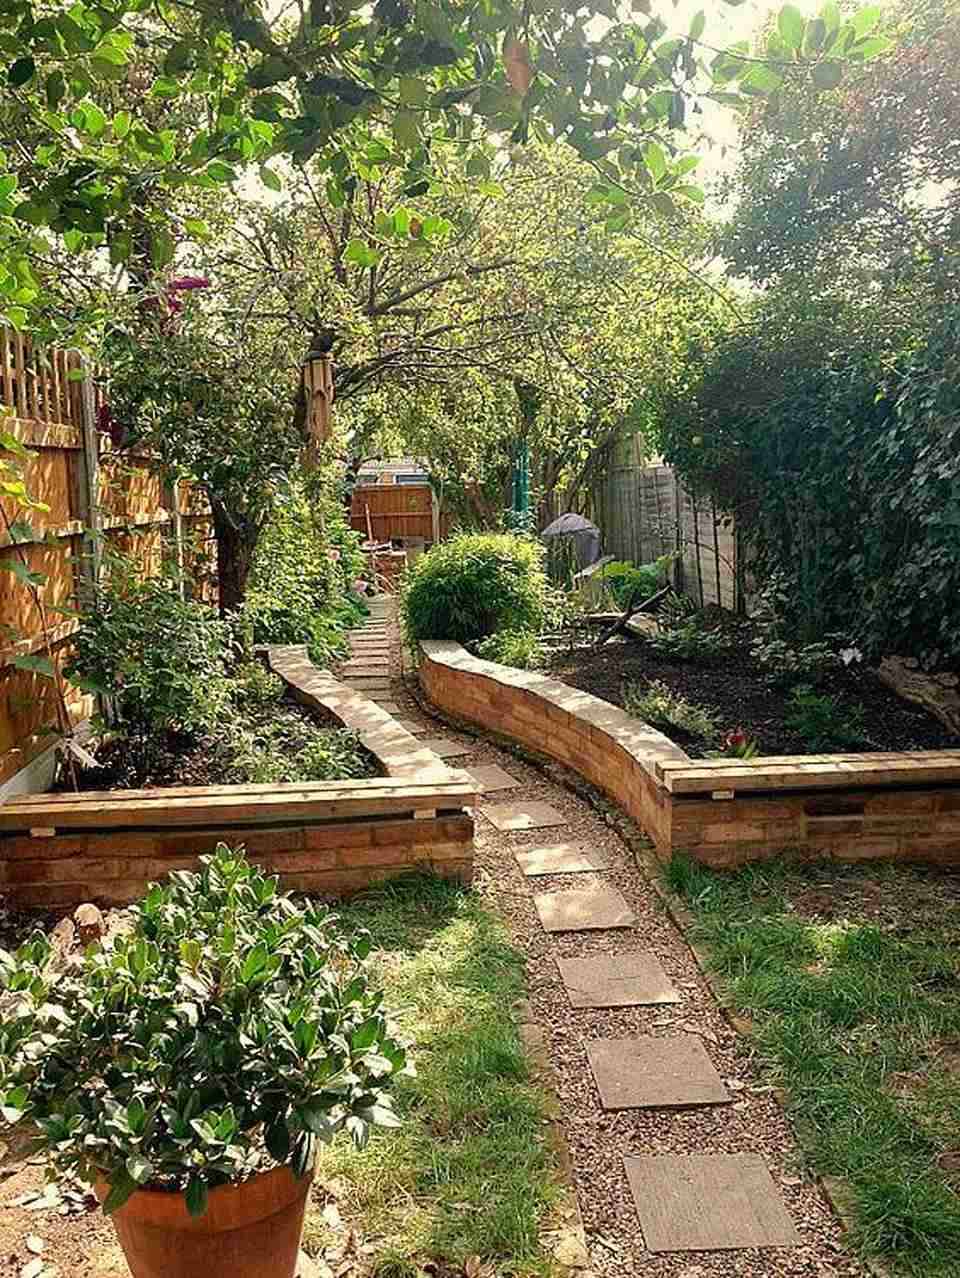 15 Raised Bed Garden Design Ideas on small front garden design ideas, flower bed box ideas, raised bed with bench, outdoor bench ideas, safari box ideas, thanksgiving box ideas, planter box ideas, baby box ideas, cookies box ideas, herb garden design ideas, date box ideas, recycling box ideas, unique container garden ideas, christmas box ideas, backyard herb garden ideas, travel box ideas, tree box ideas, camping box ideas, dessert box ideas, recipe box ideas,